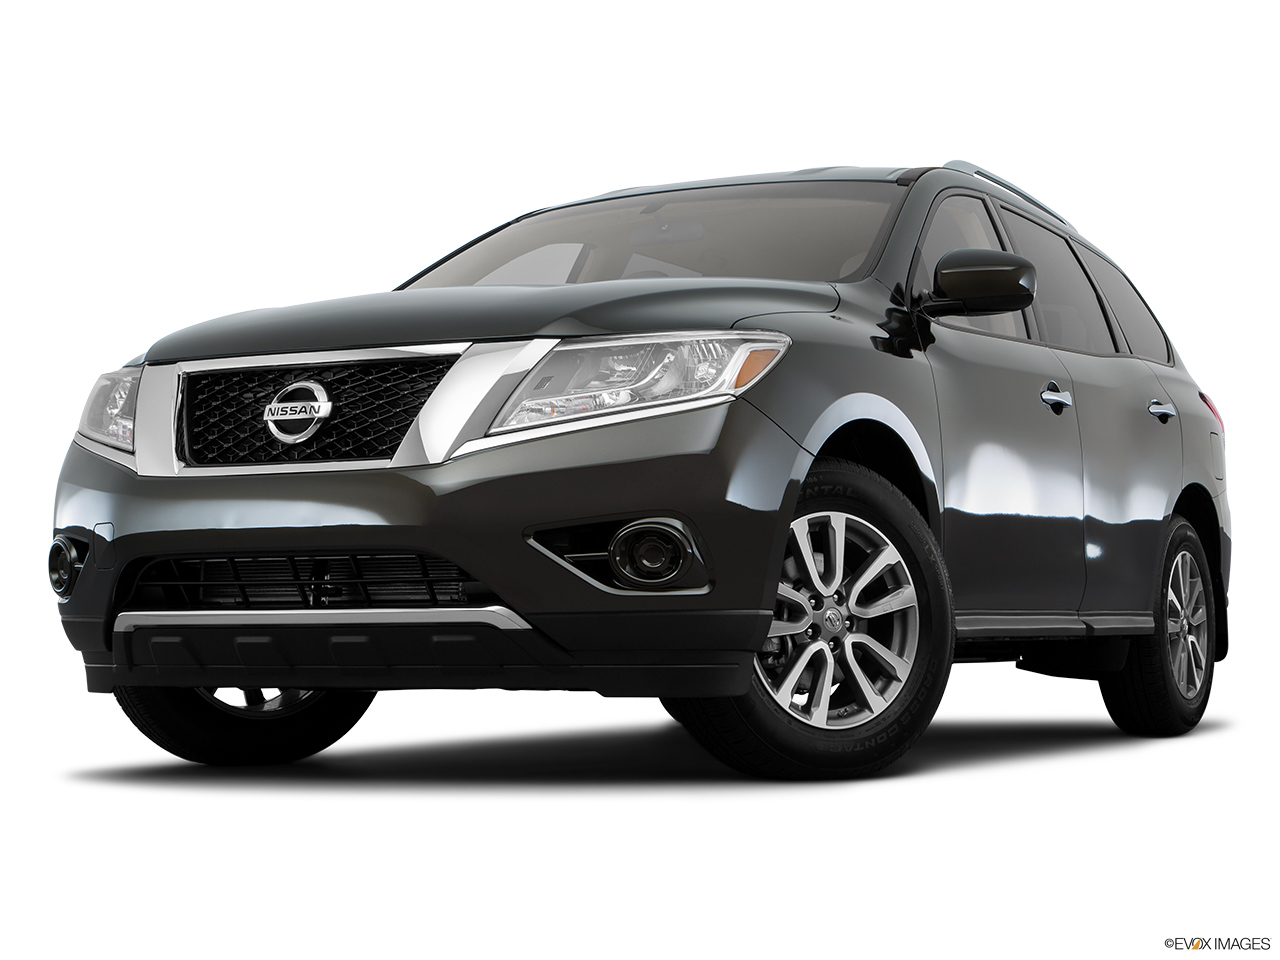 2016 Nissan Pathfinder Prices in Qatar, Gulf Specs & Reviews for Doha | YallaMotor